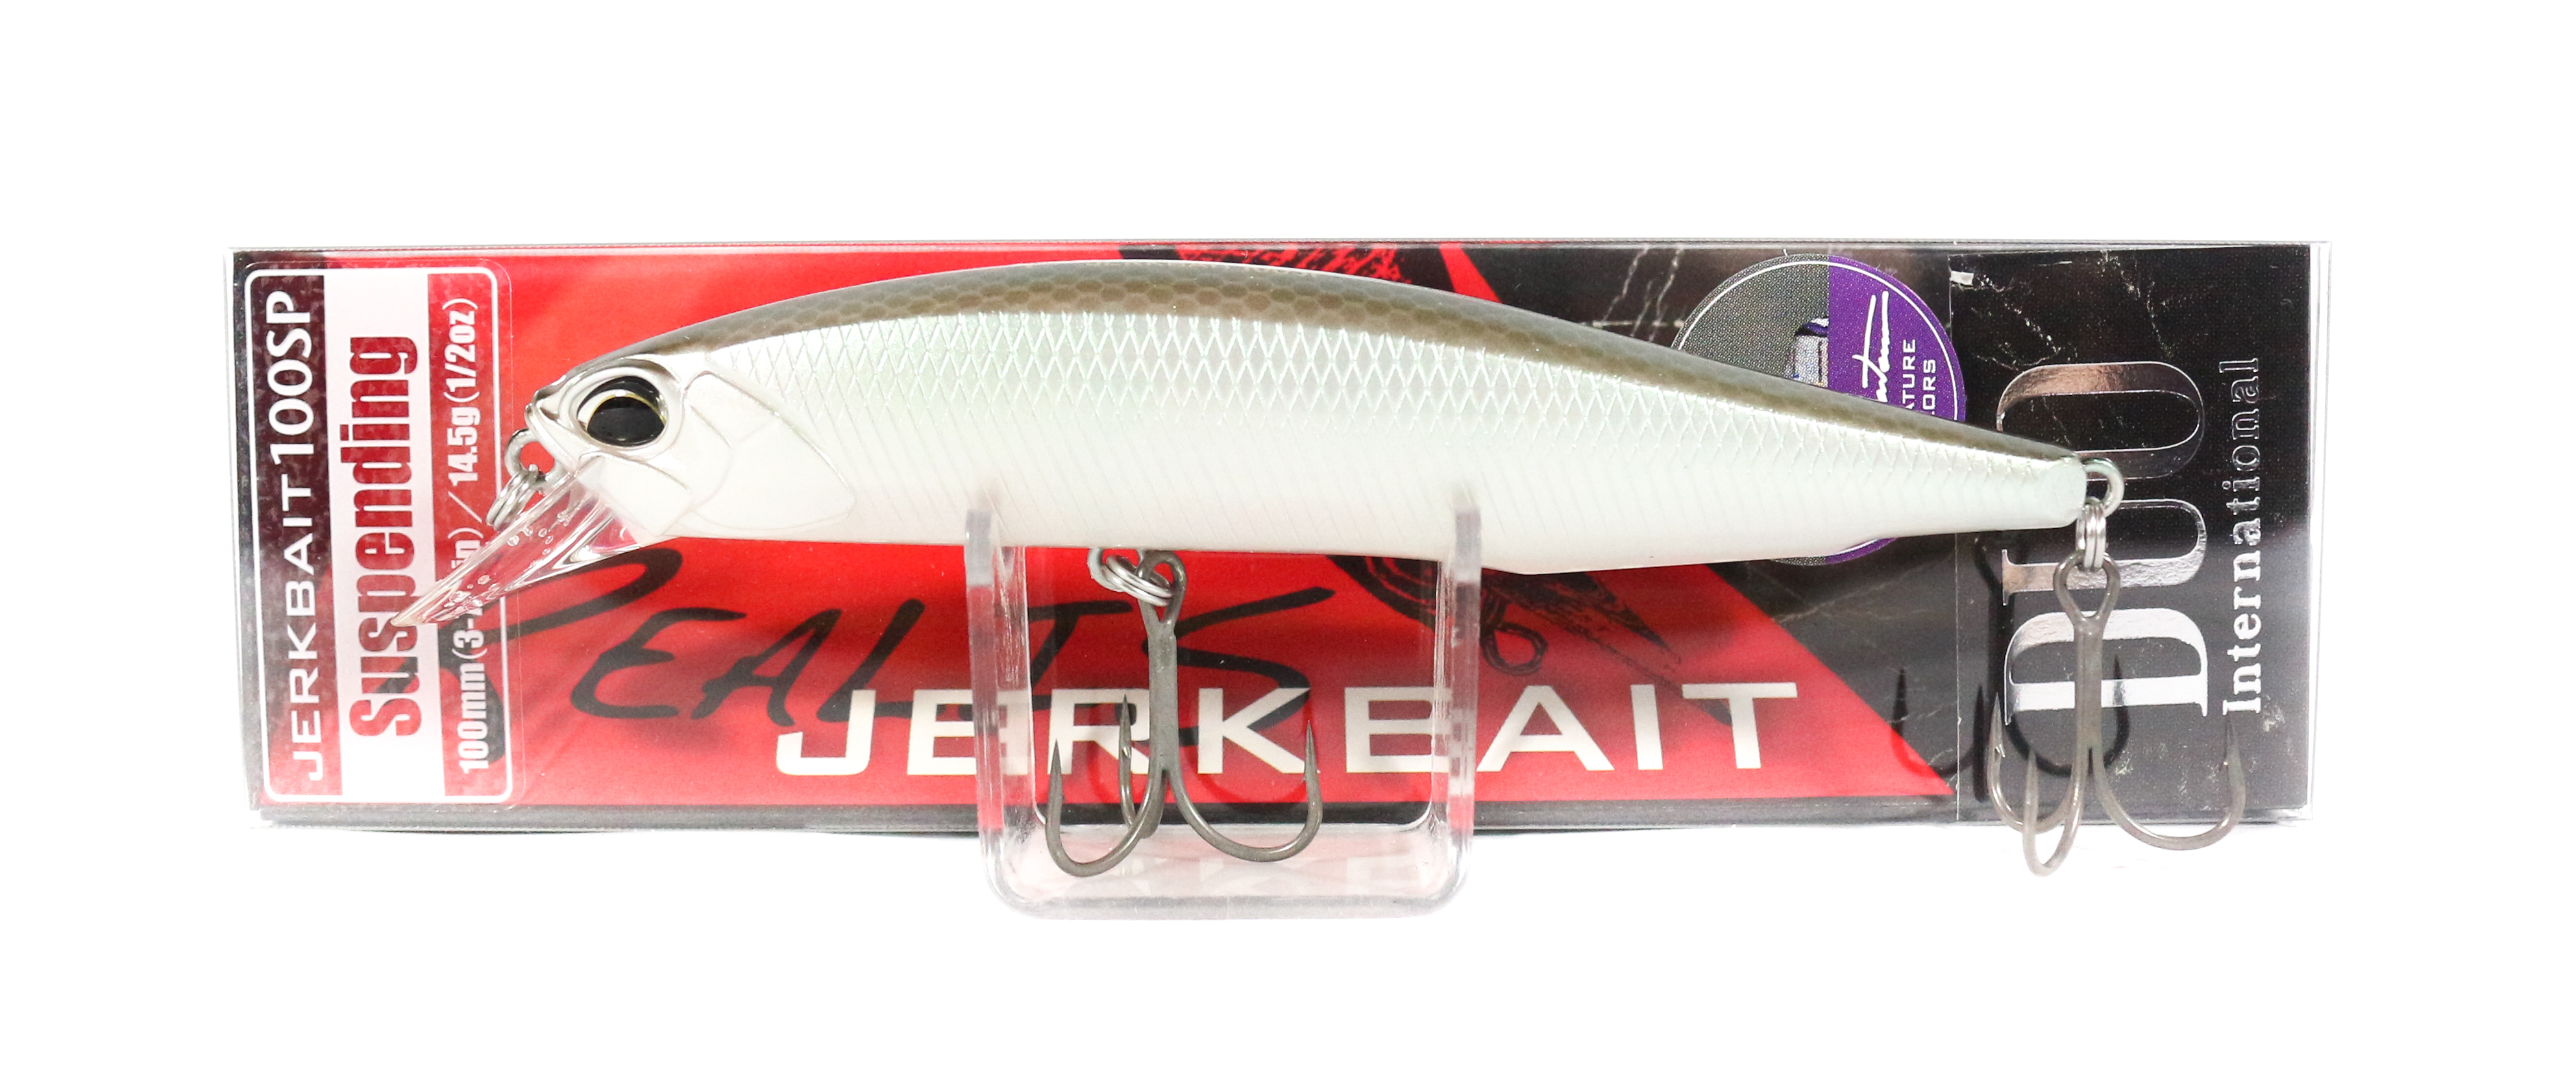 Duo Realis Jerkbait 100SP Suspend Lure CCC3116 (4485)